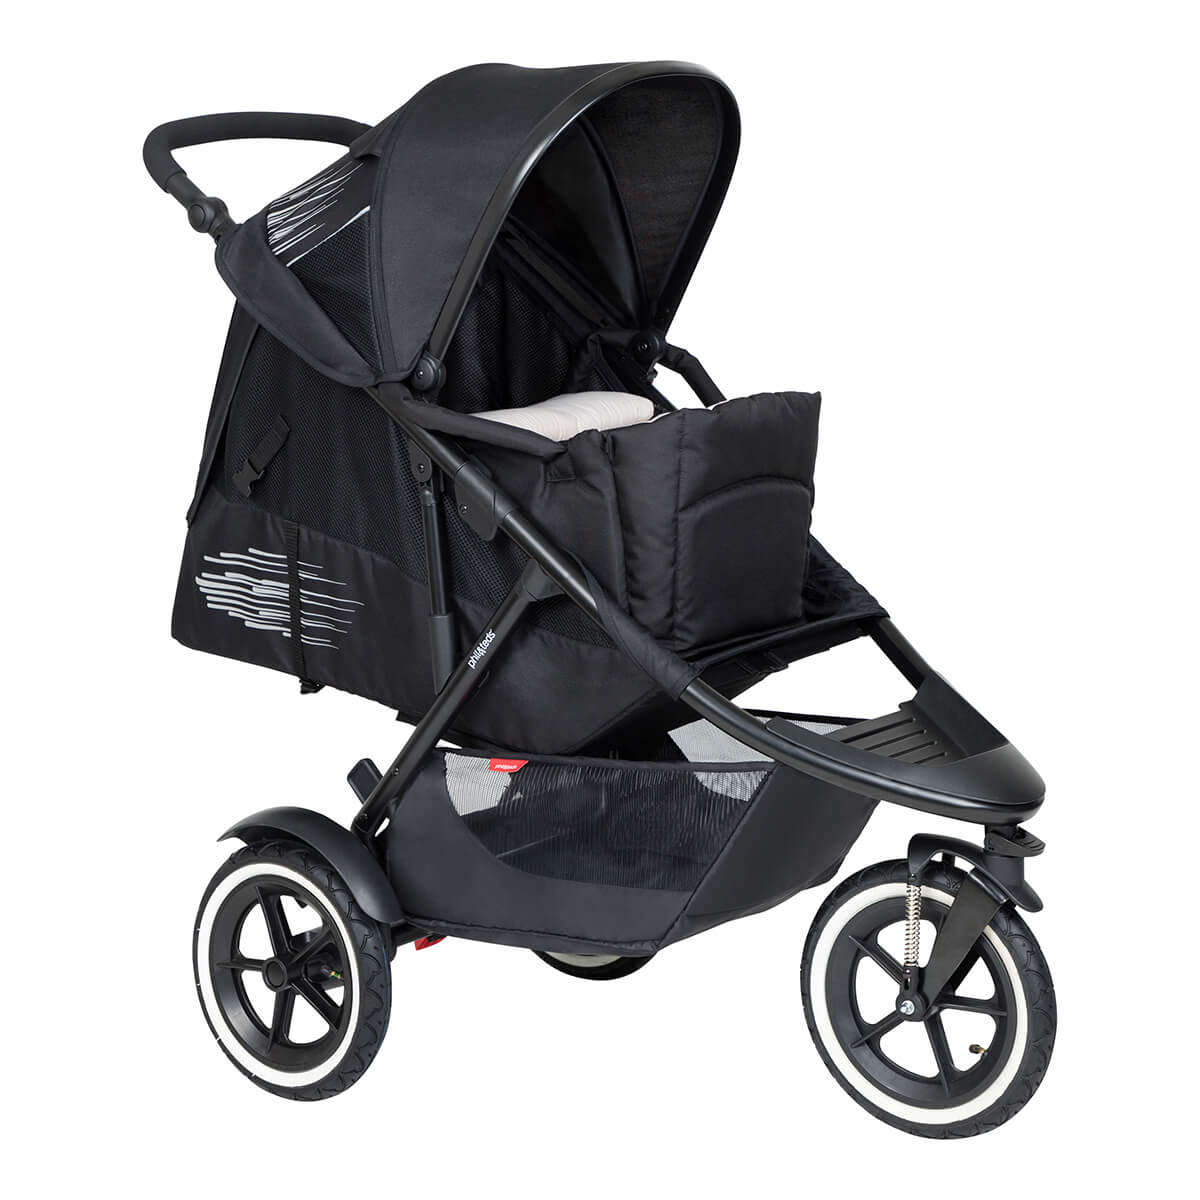 https://cdn.accentuate.io/4546157740137/19119322529897/philteds-sport-buggy-with-cocoon-full-recline-v1625778273263.jpg?1200x1200